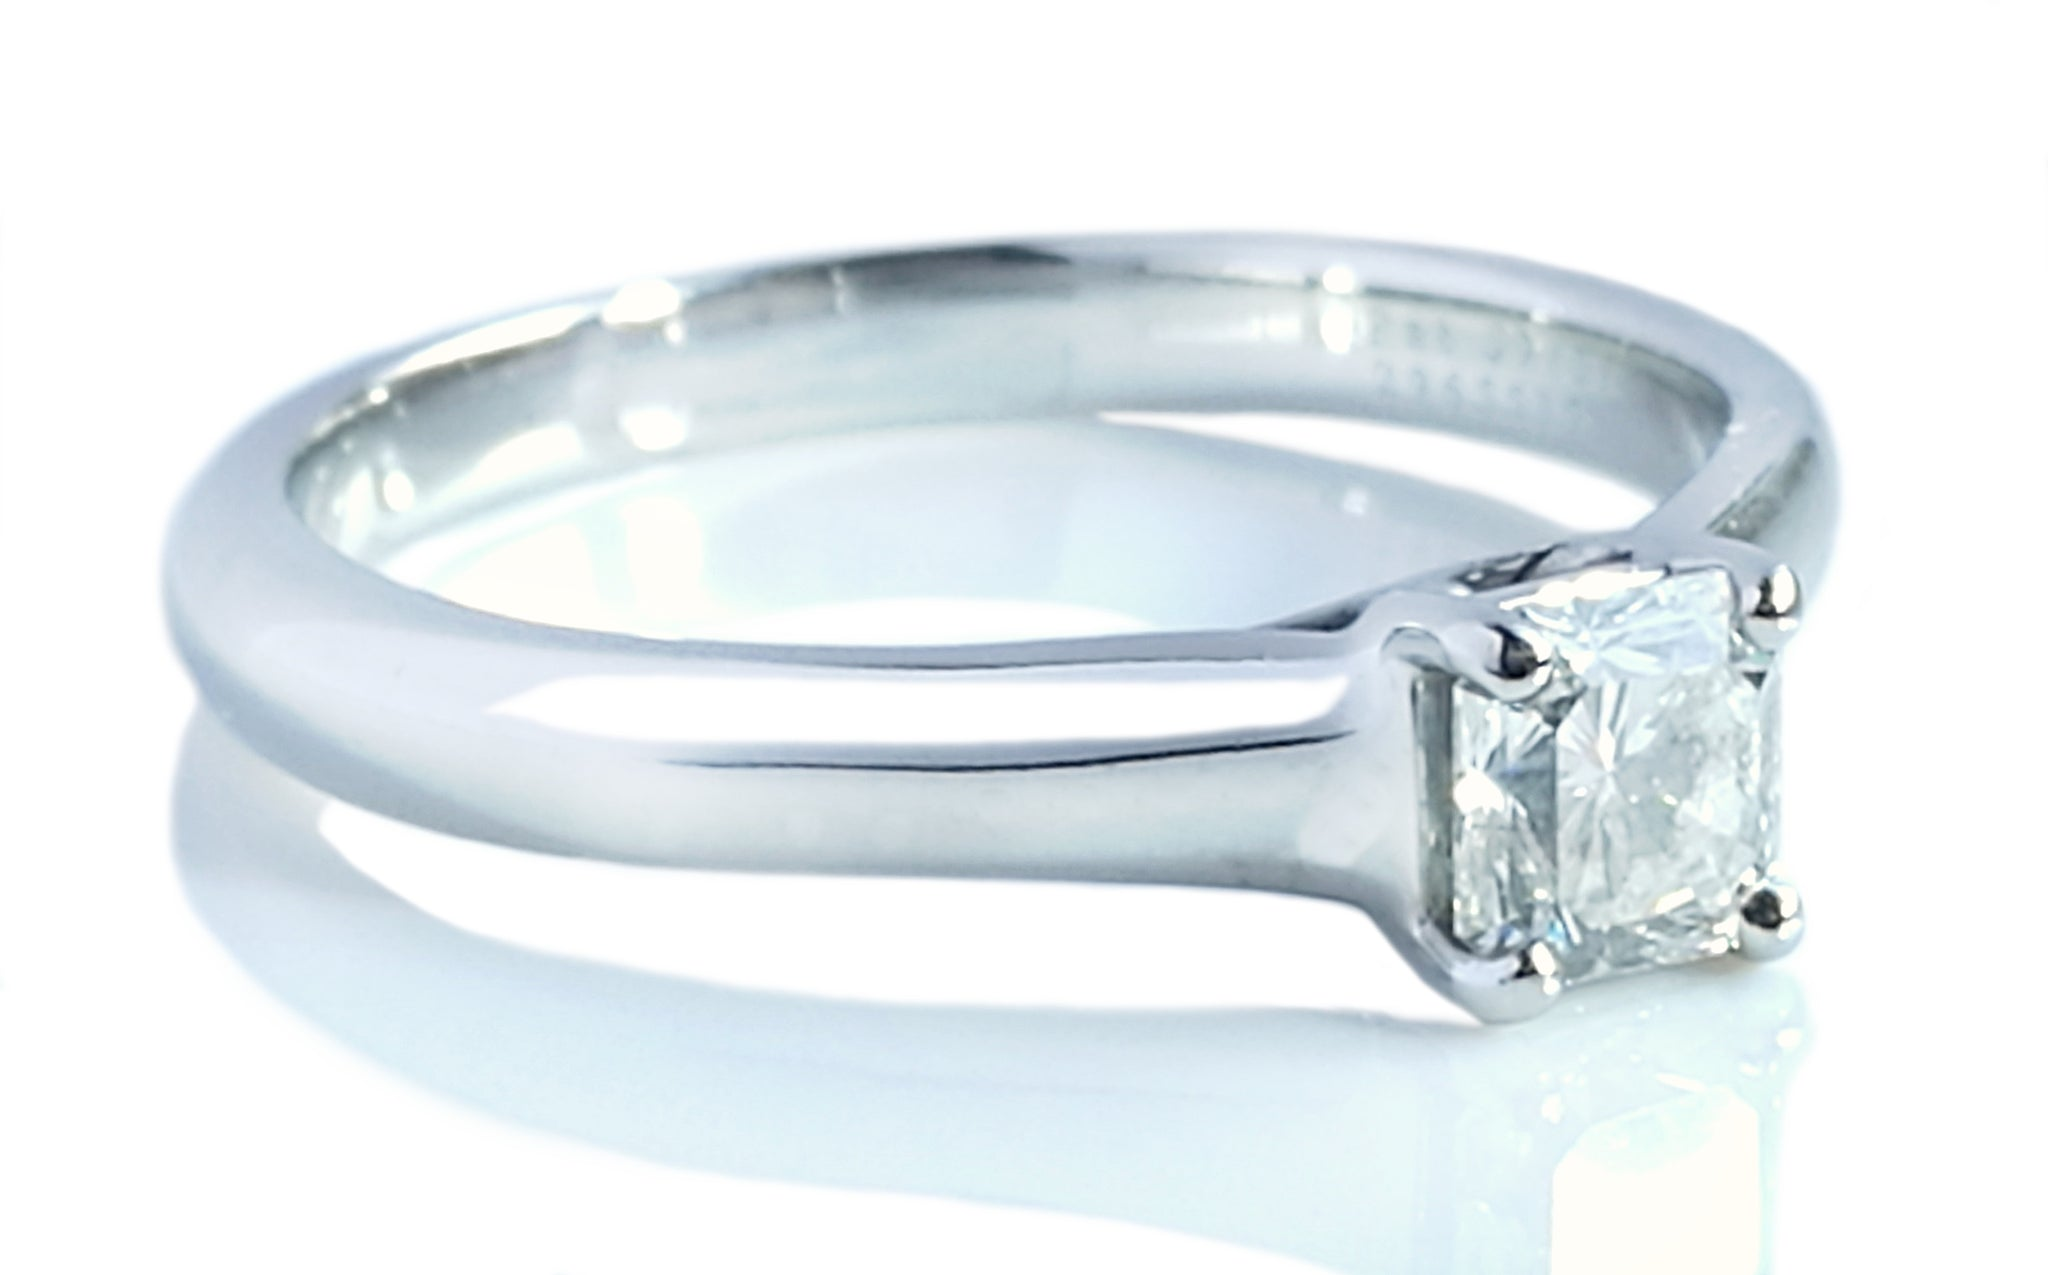 Tiffany & Co. 0.40ct H/VVS2 Lucida Square Cut Diamond Engagement Ring